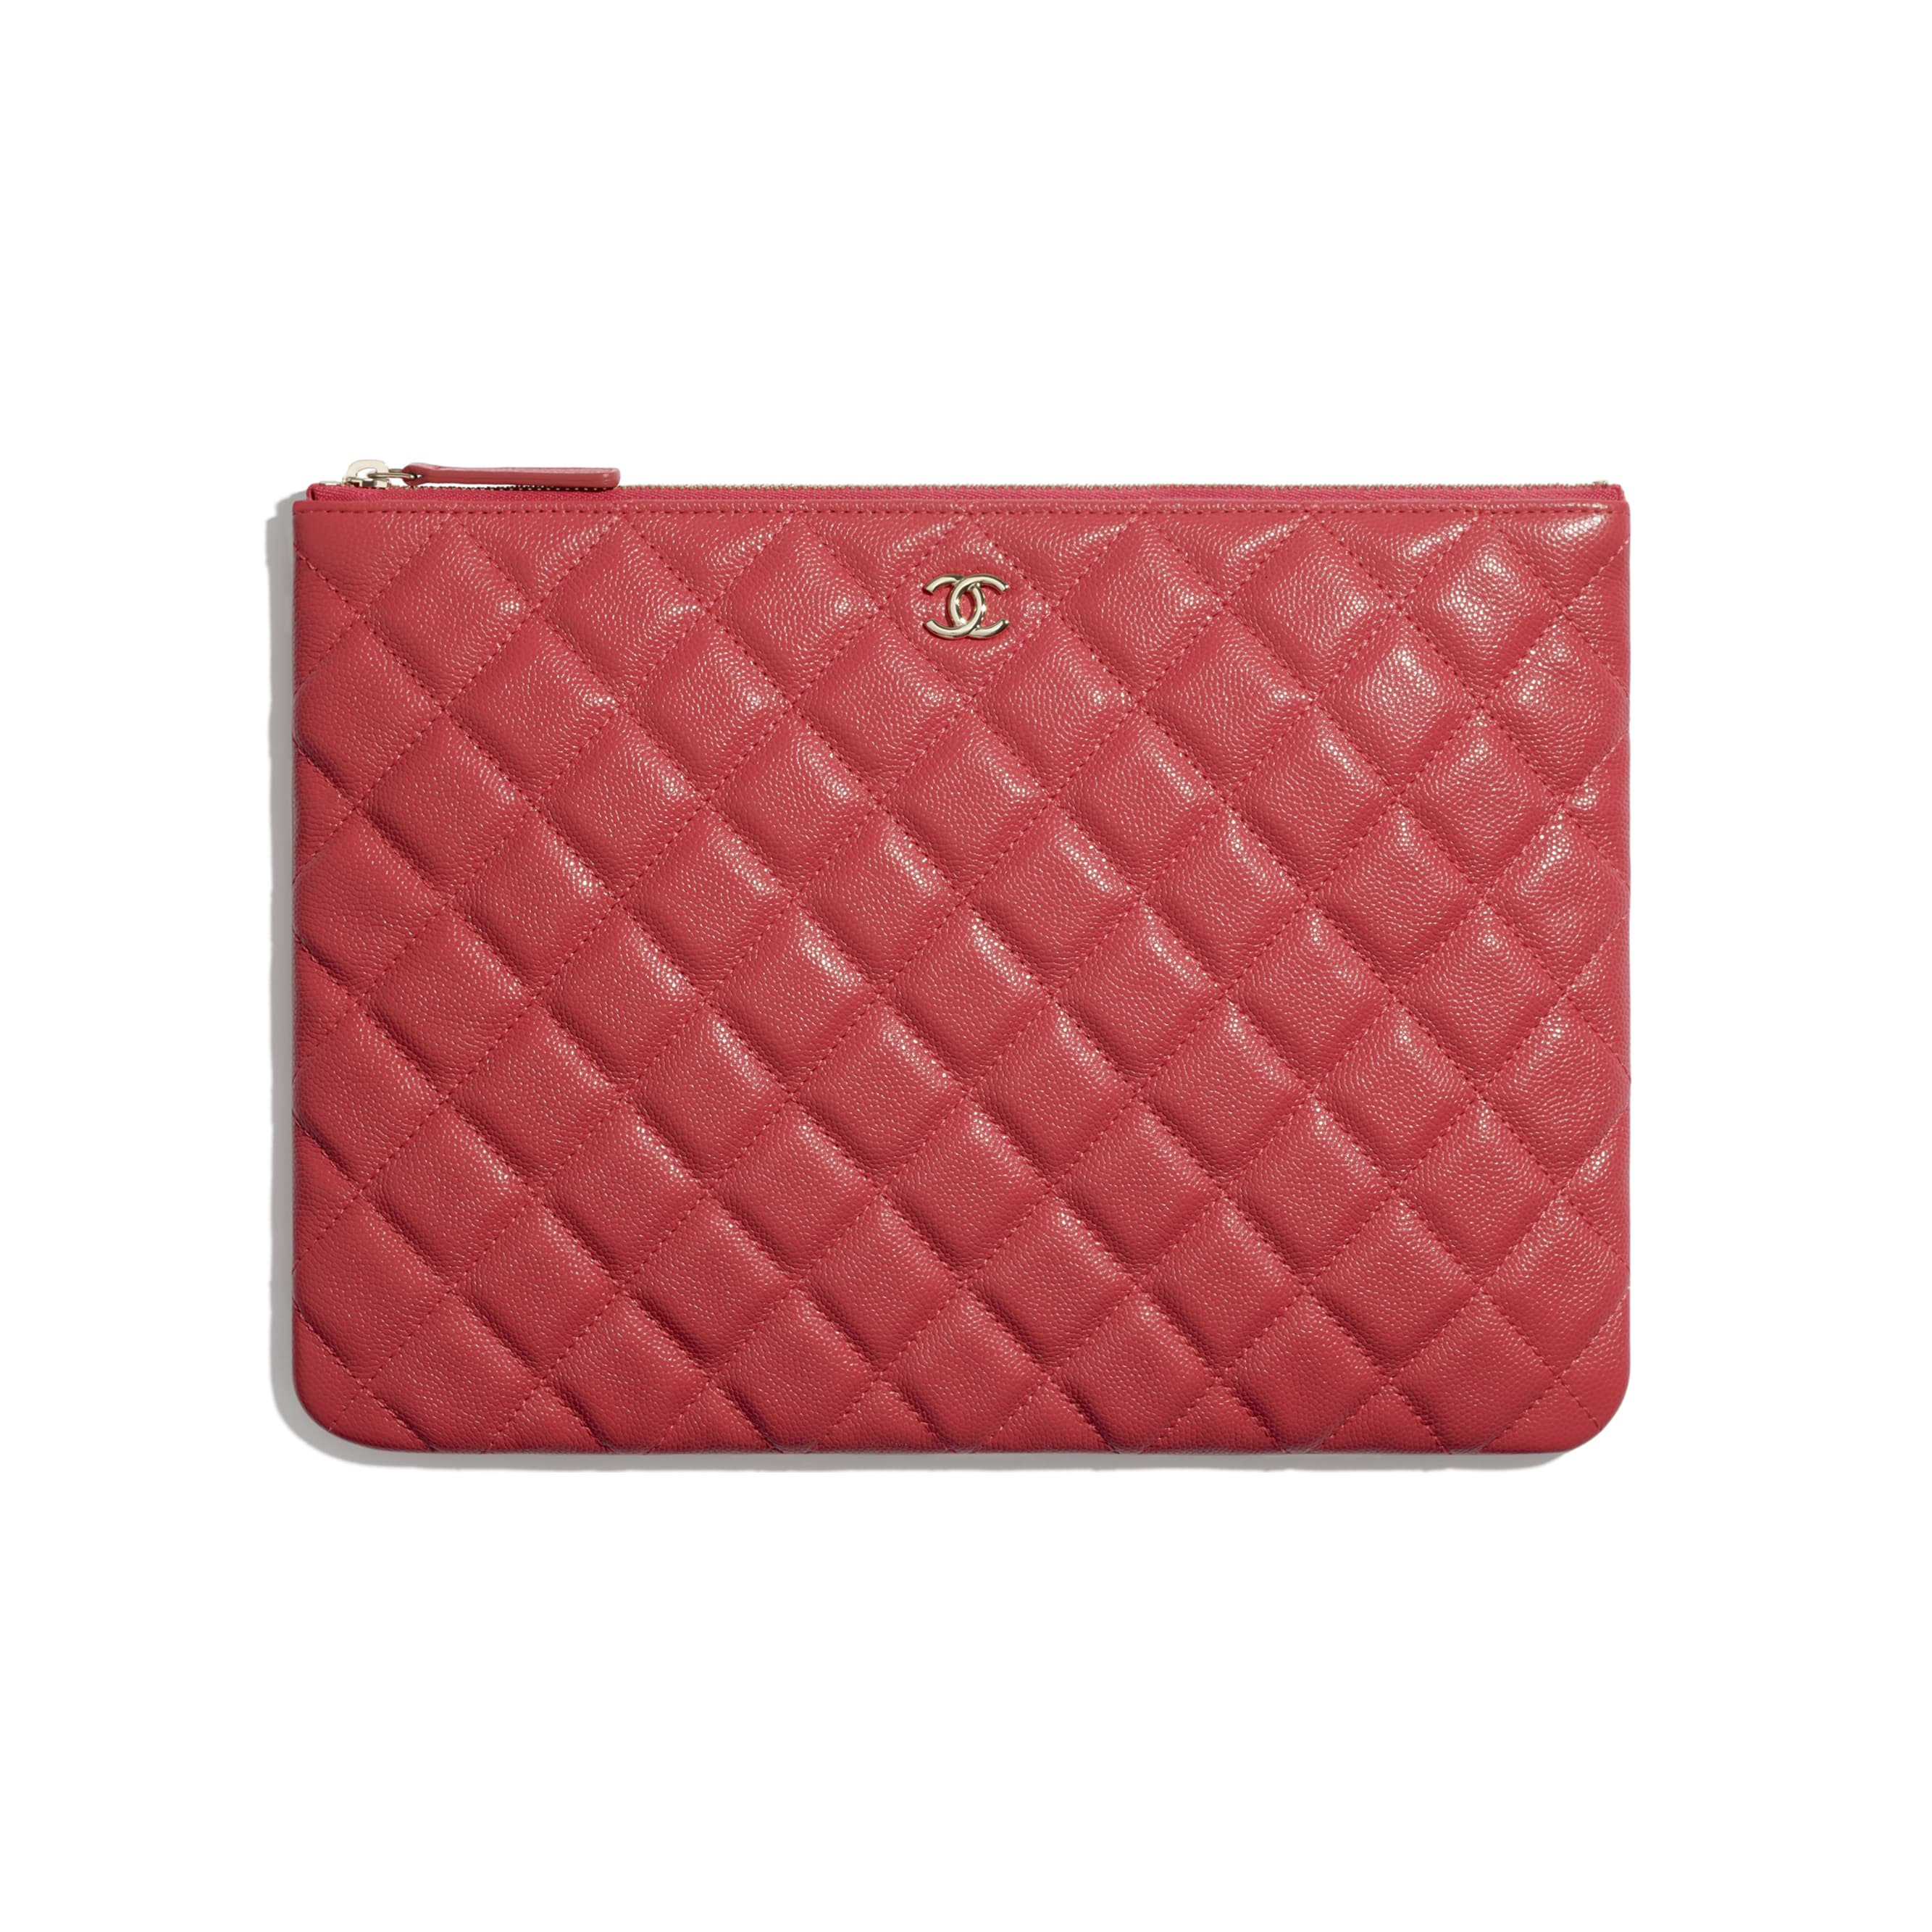 Classic Pouch - Red - Grained Calfskin & Gold-Tone Metal - CHANEL - Default view - see standard sized version